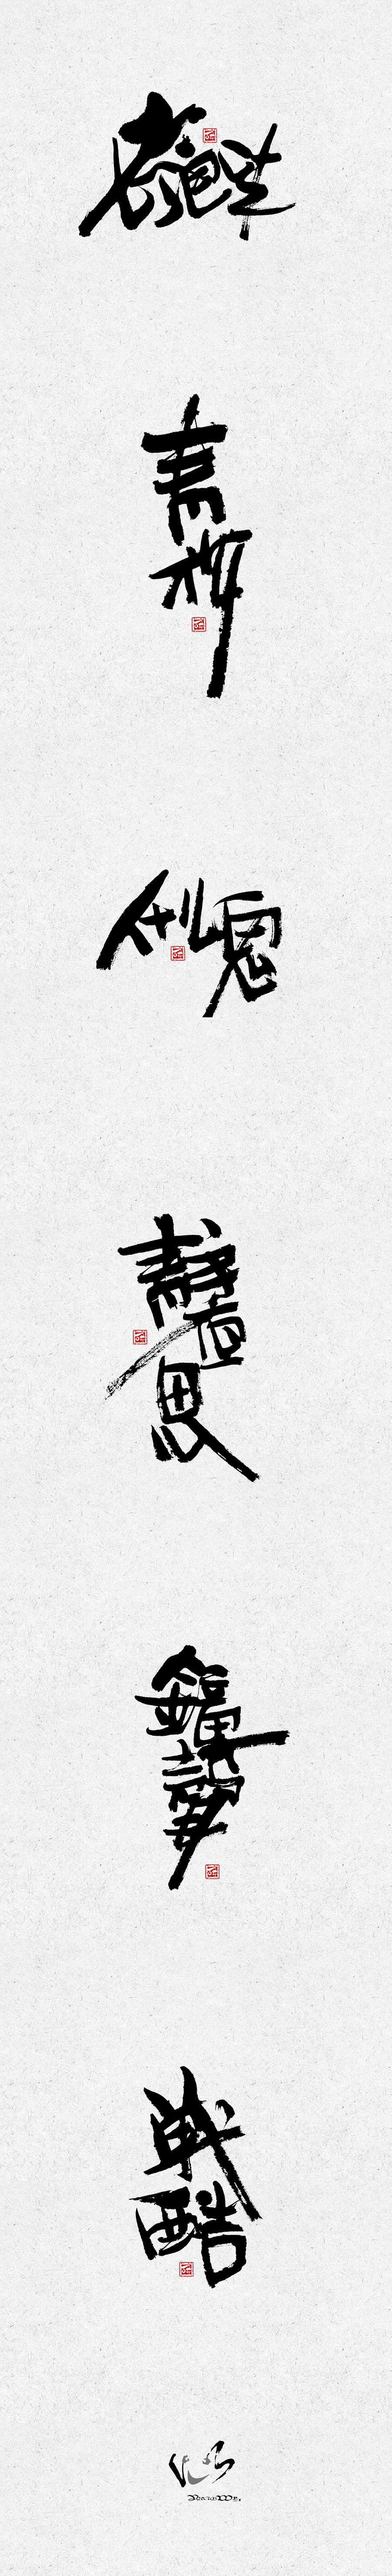 chinesefontdesign.com 2016 12 20 21 33 39 Enjoy traditional Chinese brush fonts